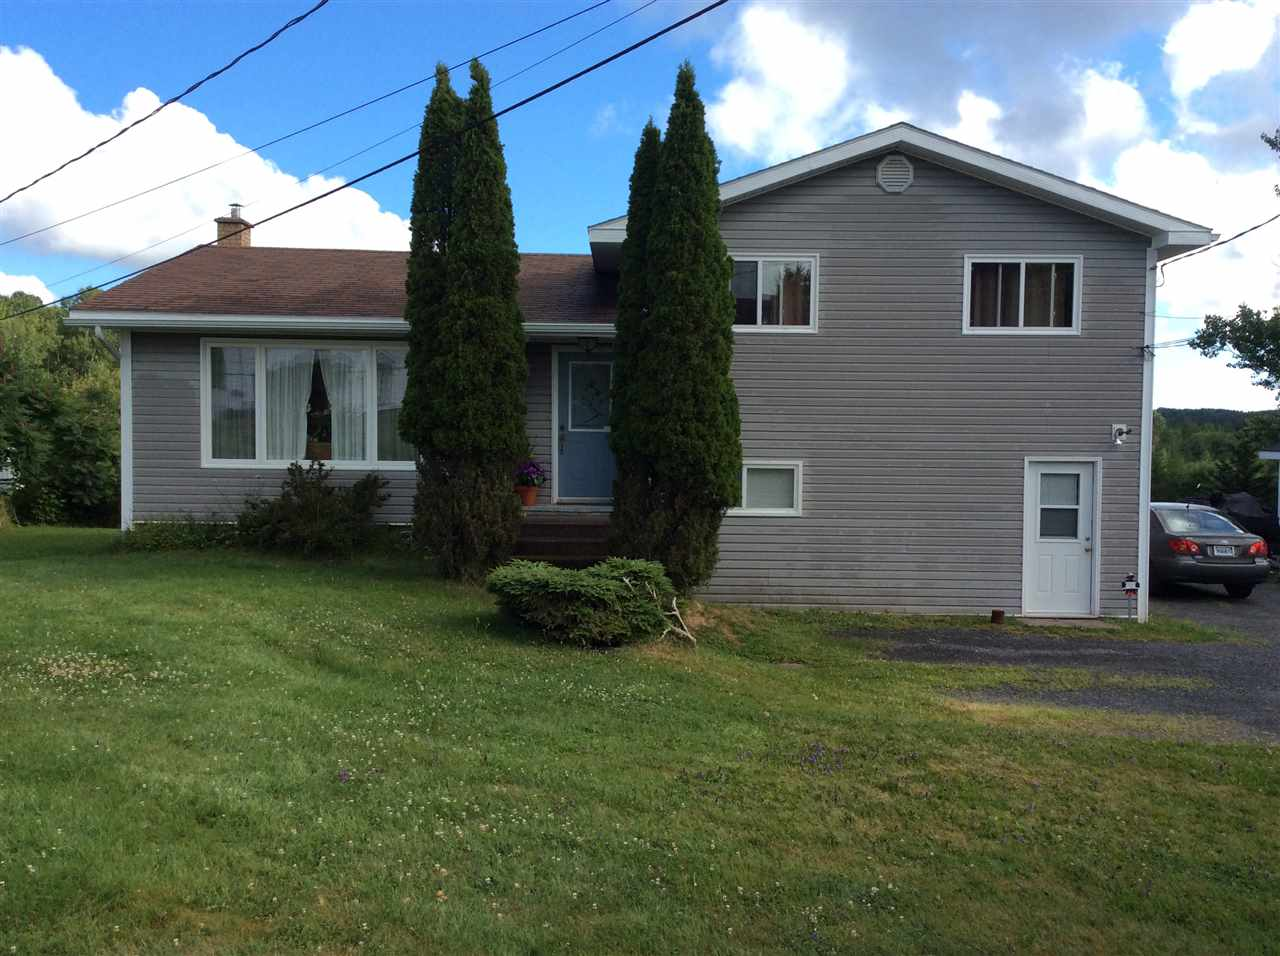 Main Photo: 2214 Spring Garden Road in Westville: 107-Trenton,Westville,Pictou Residential for sale (Northern Region)  : MLS®# 201719352